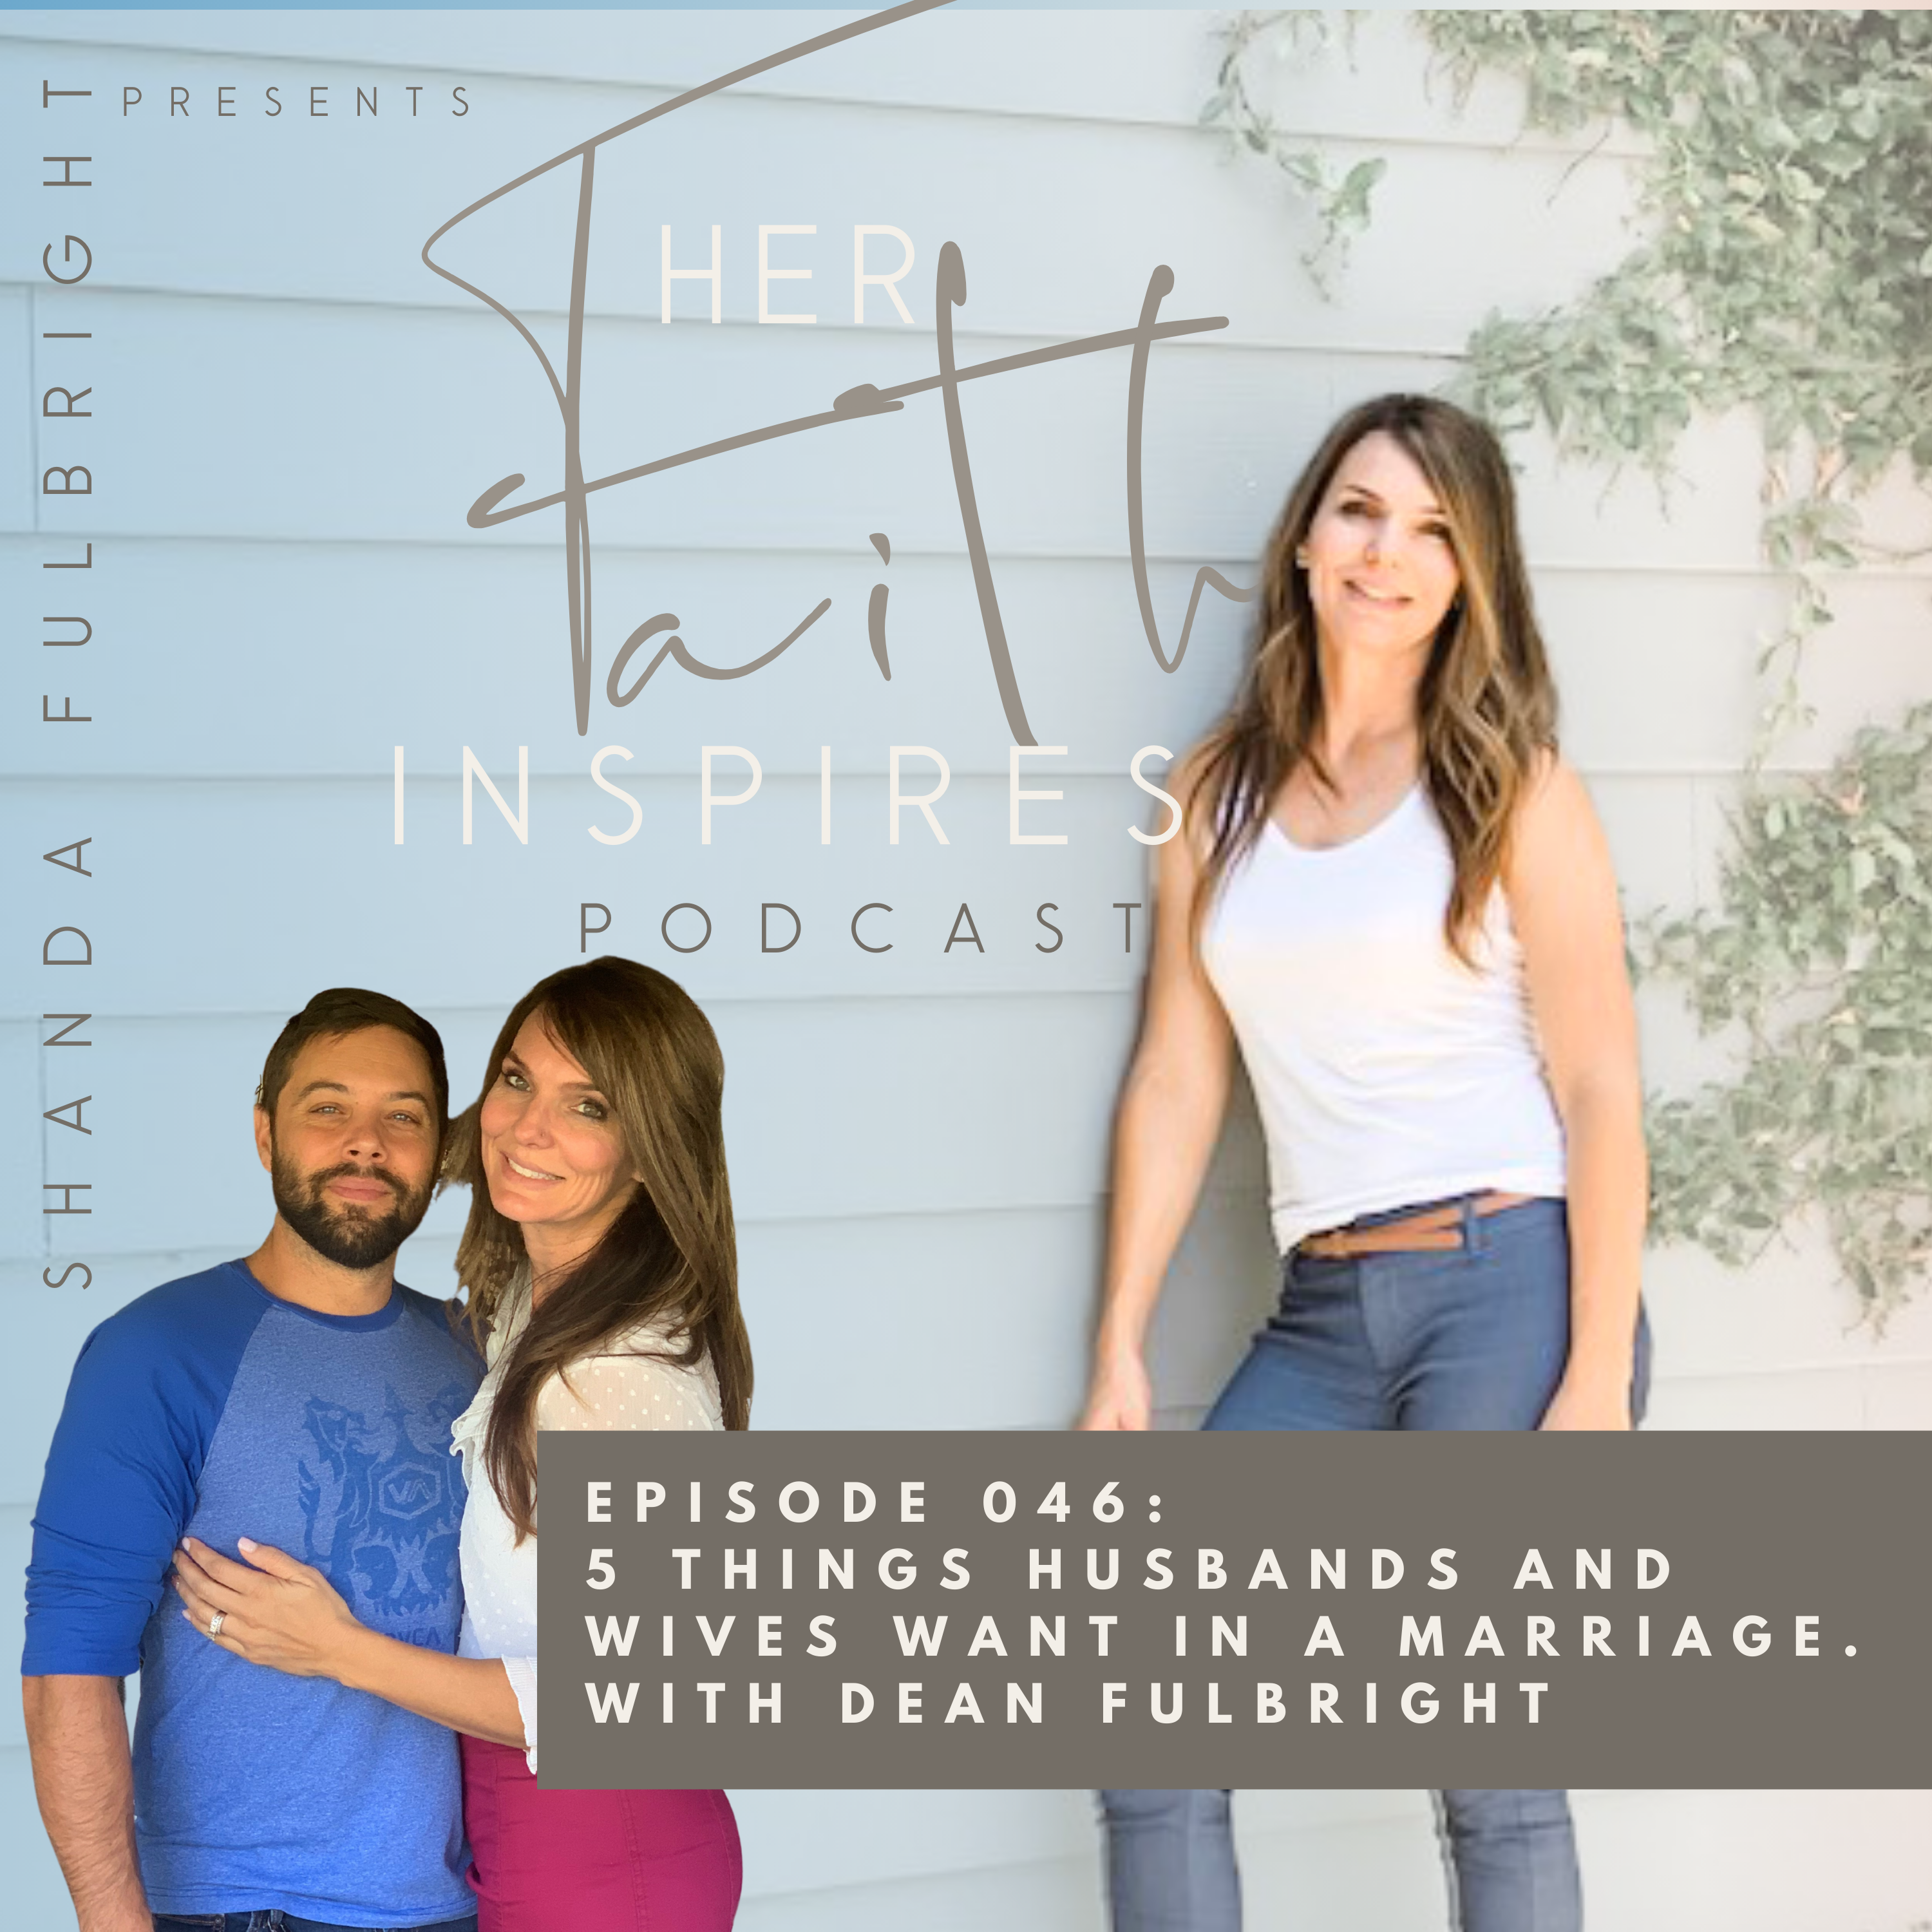 SF Podcast Episode 44 1 - HER FAITH INSPIRES 46 : 5 things husbands and wives want in a marriage.